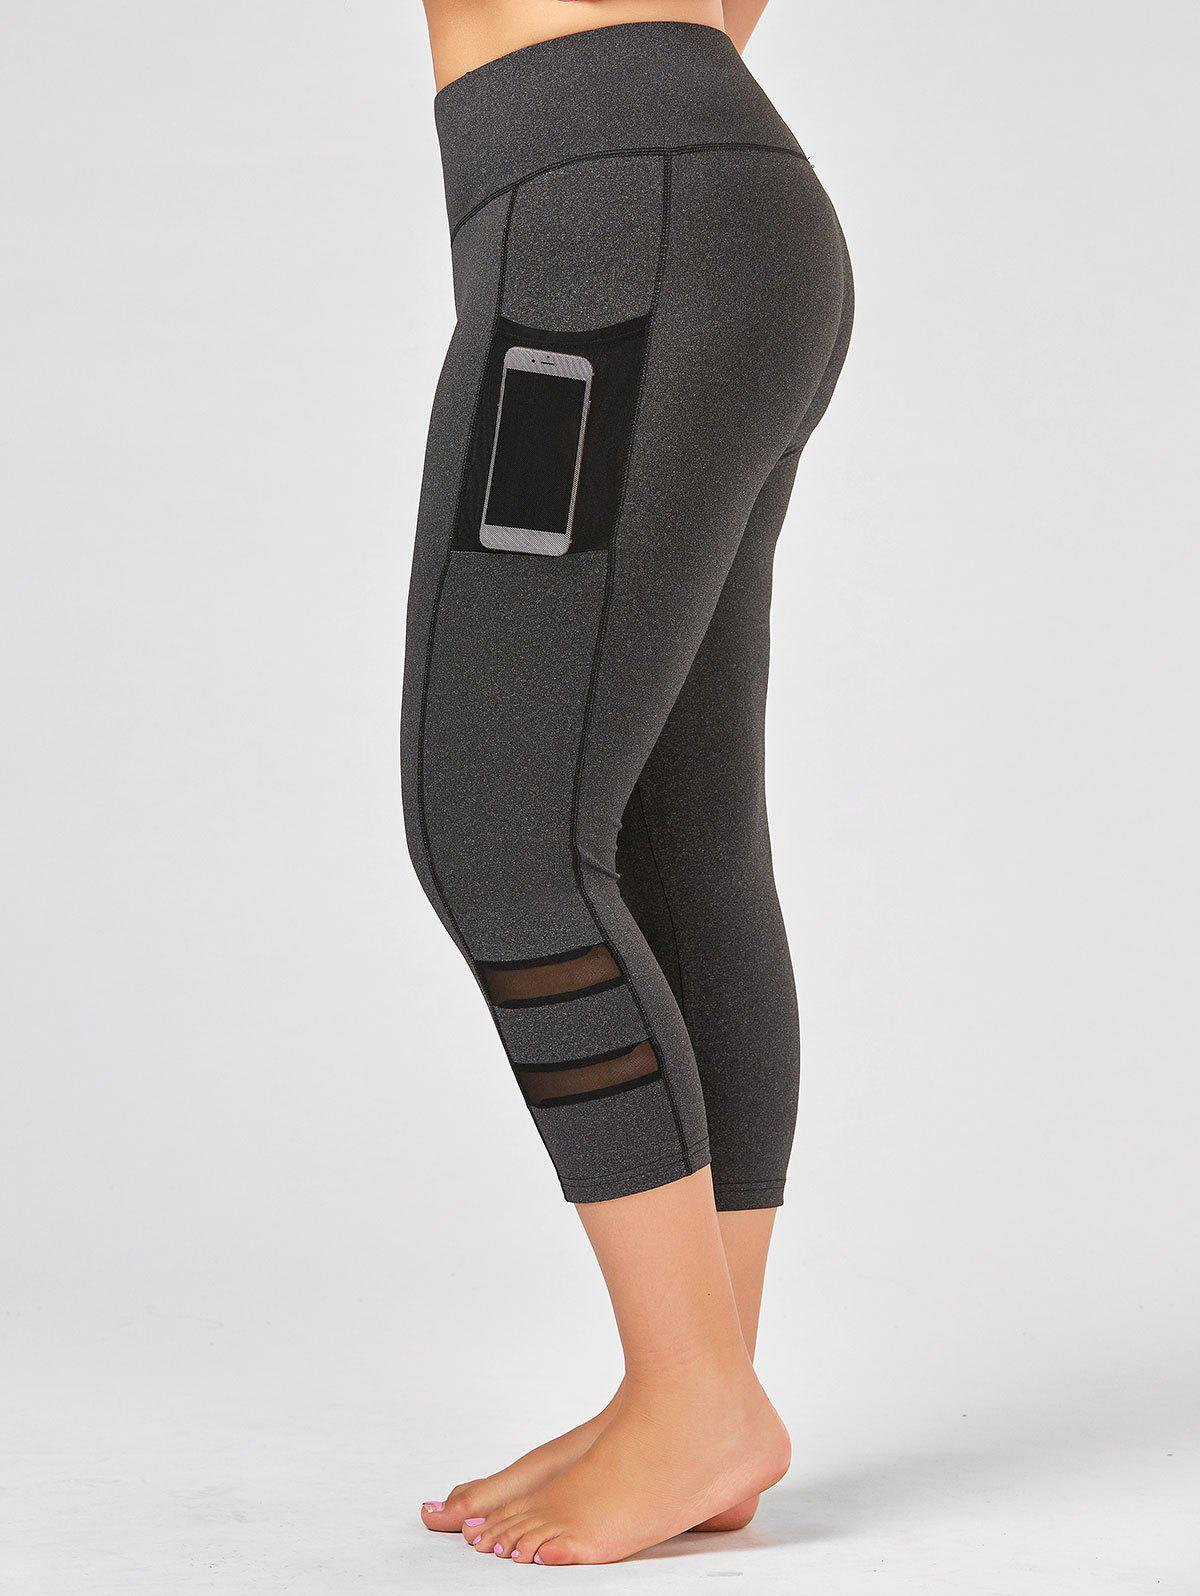 Gray 2xl Plus Size High Waist Fitness Leggings With Mesh